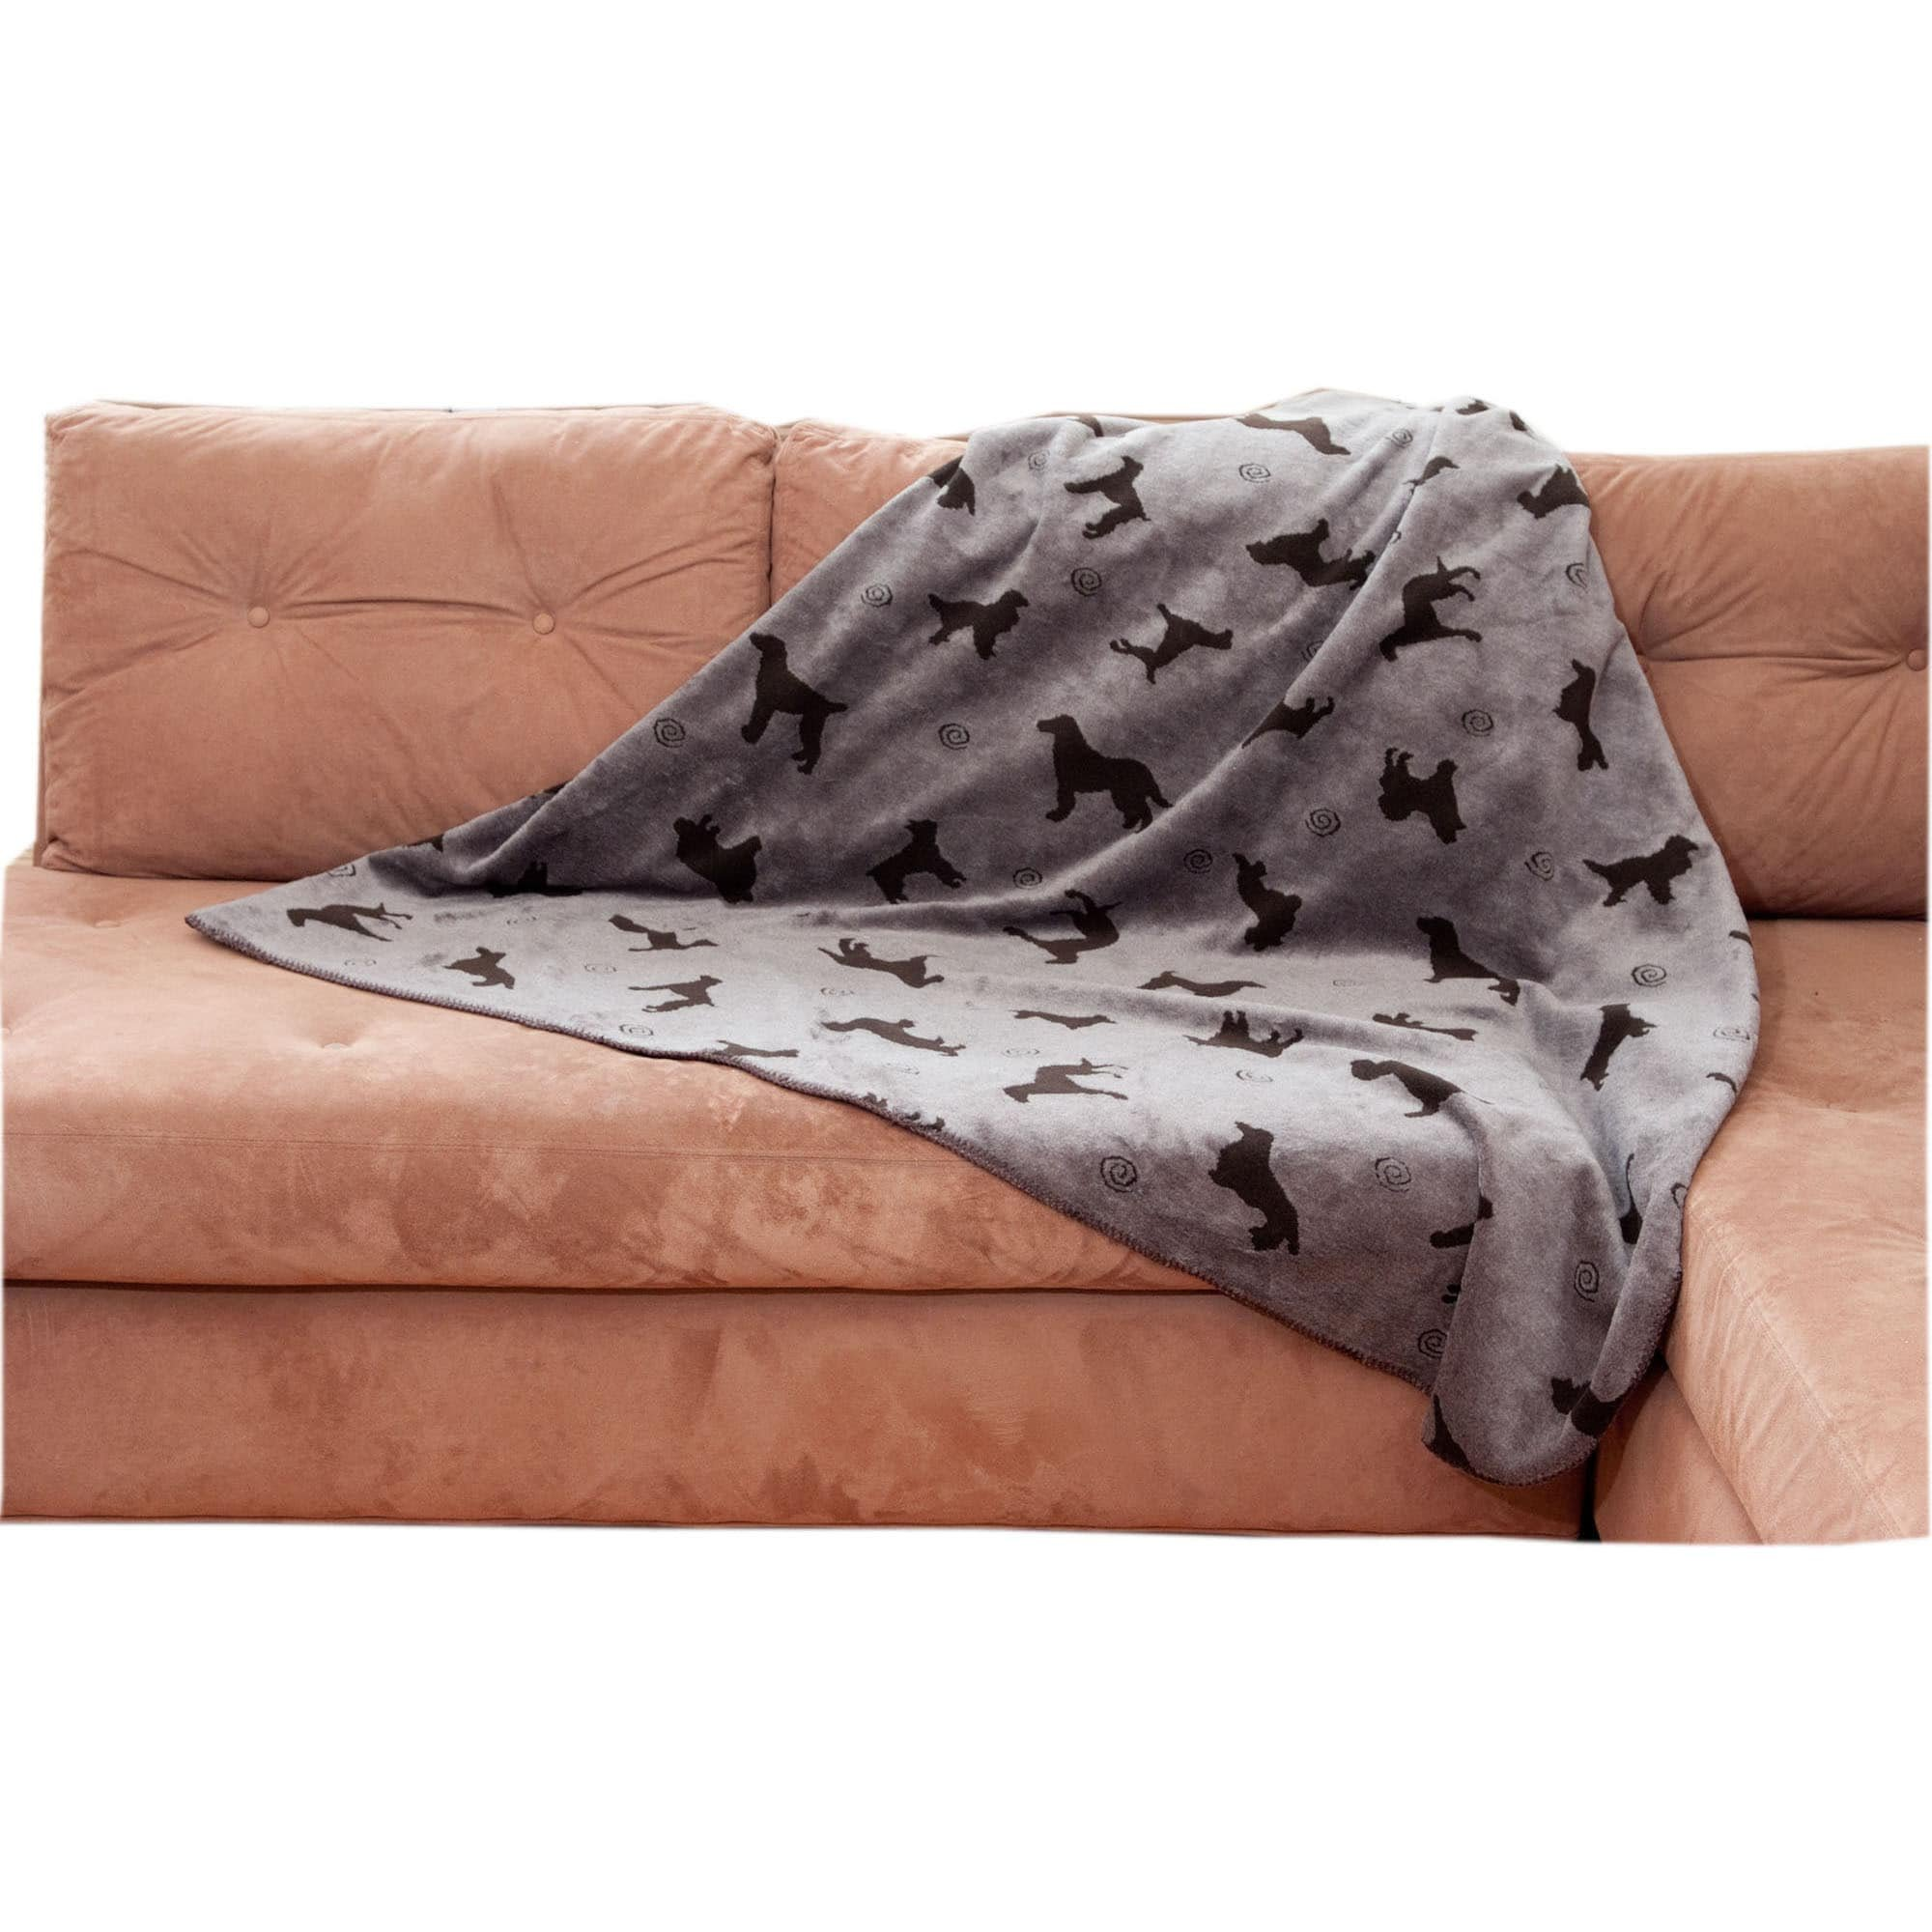 Cpc Plush Tossed Dog Throw for Pets, 60 by 90-Inch, Grey